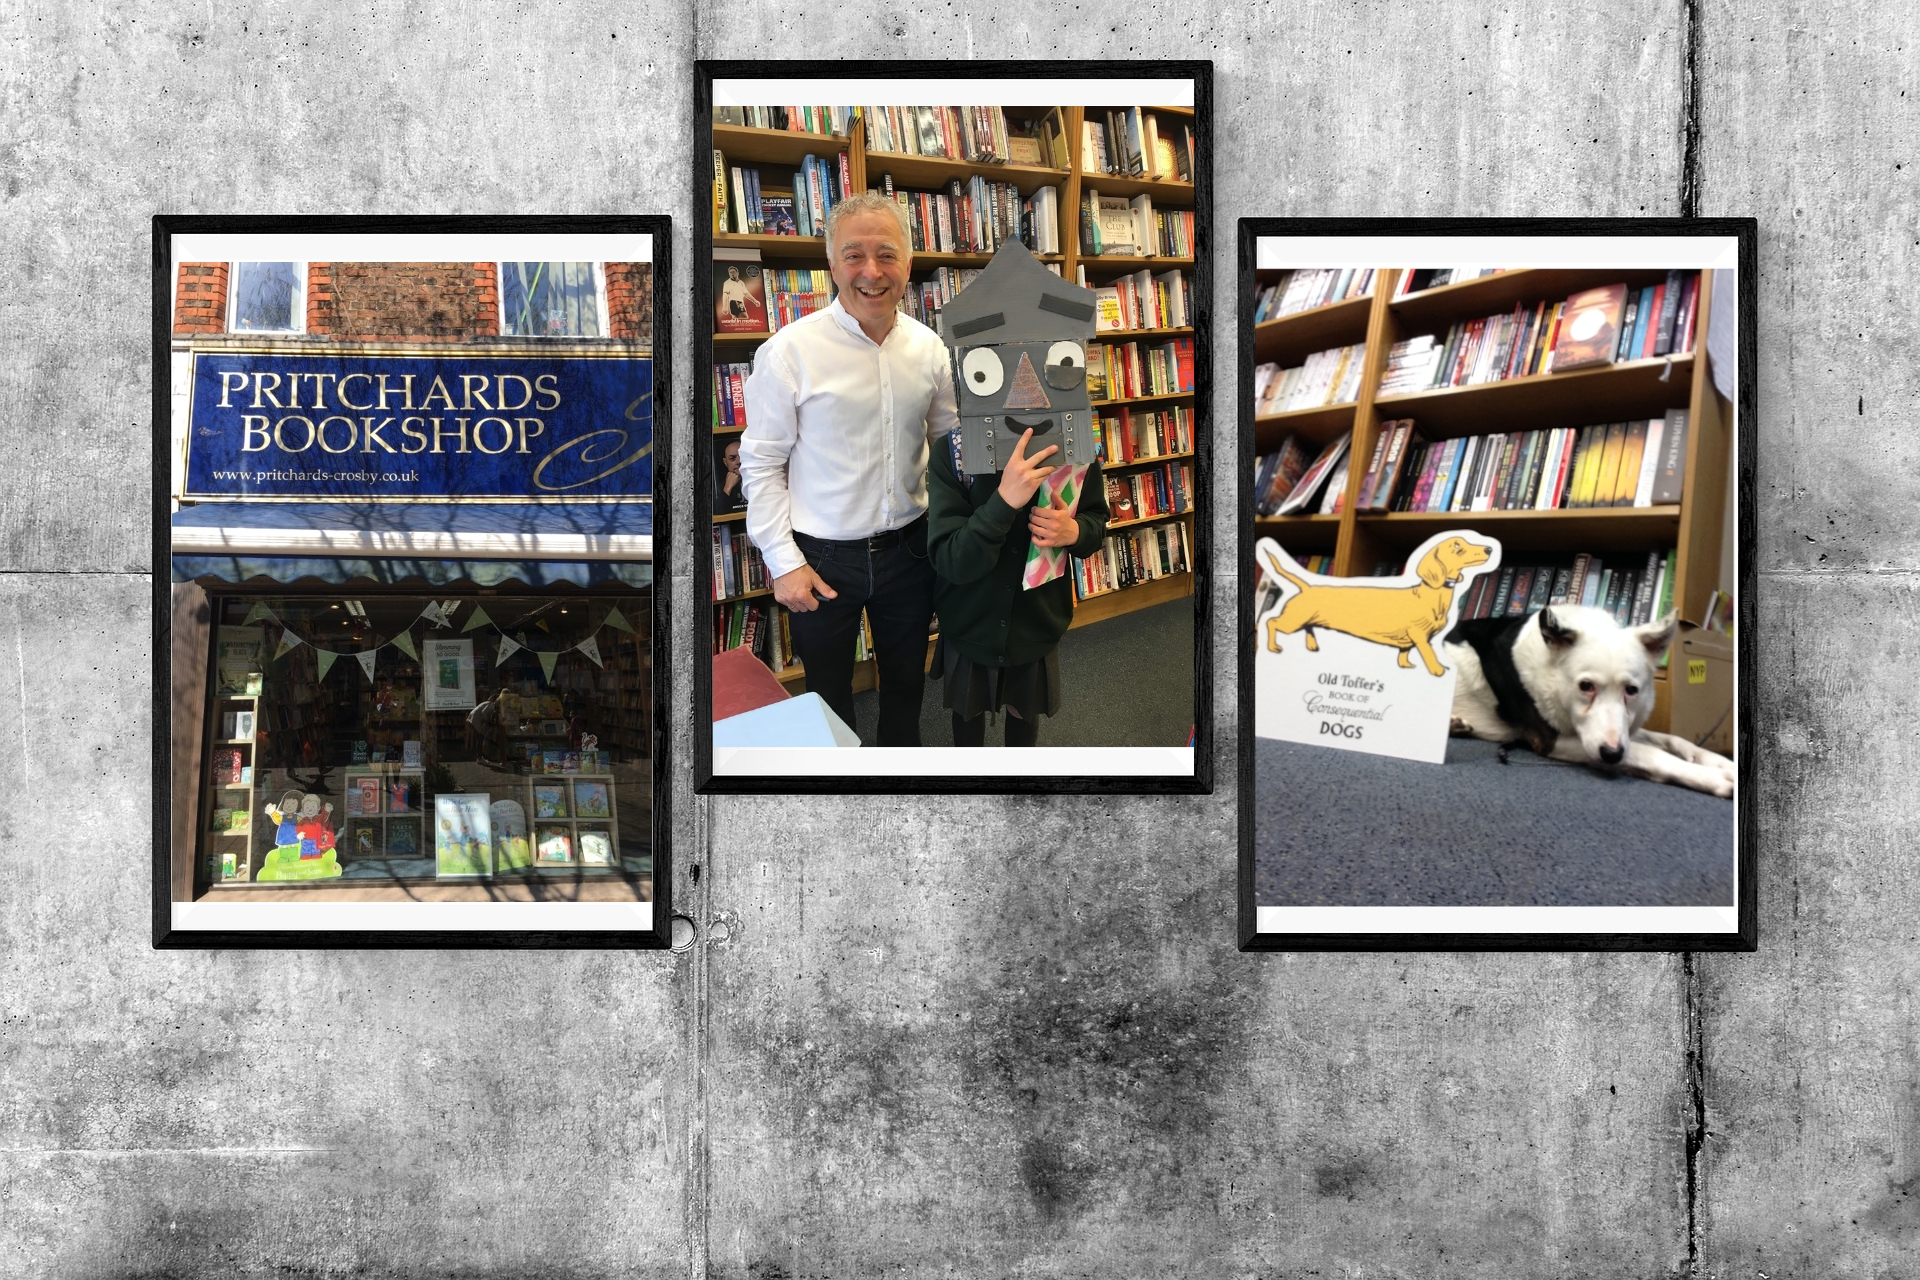 LoveReading Bookshop of the Month: Pritchards Bookshop (Crosby)